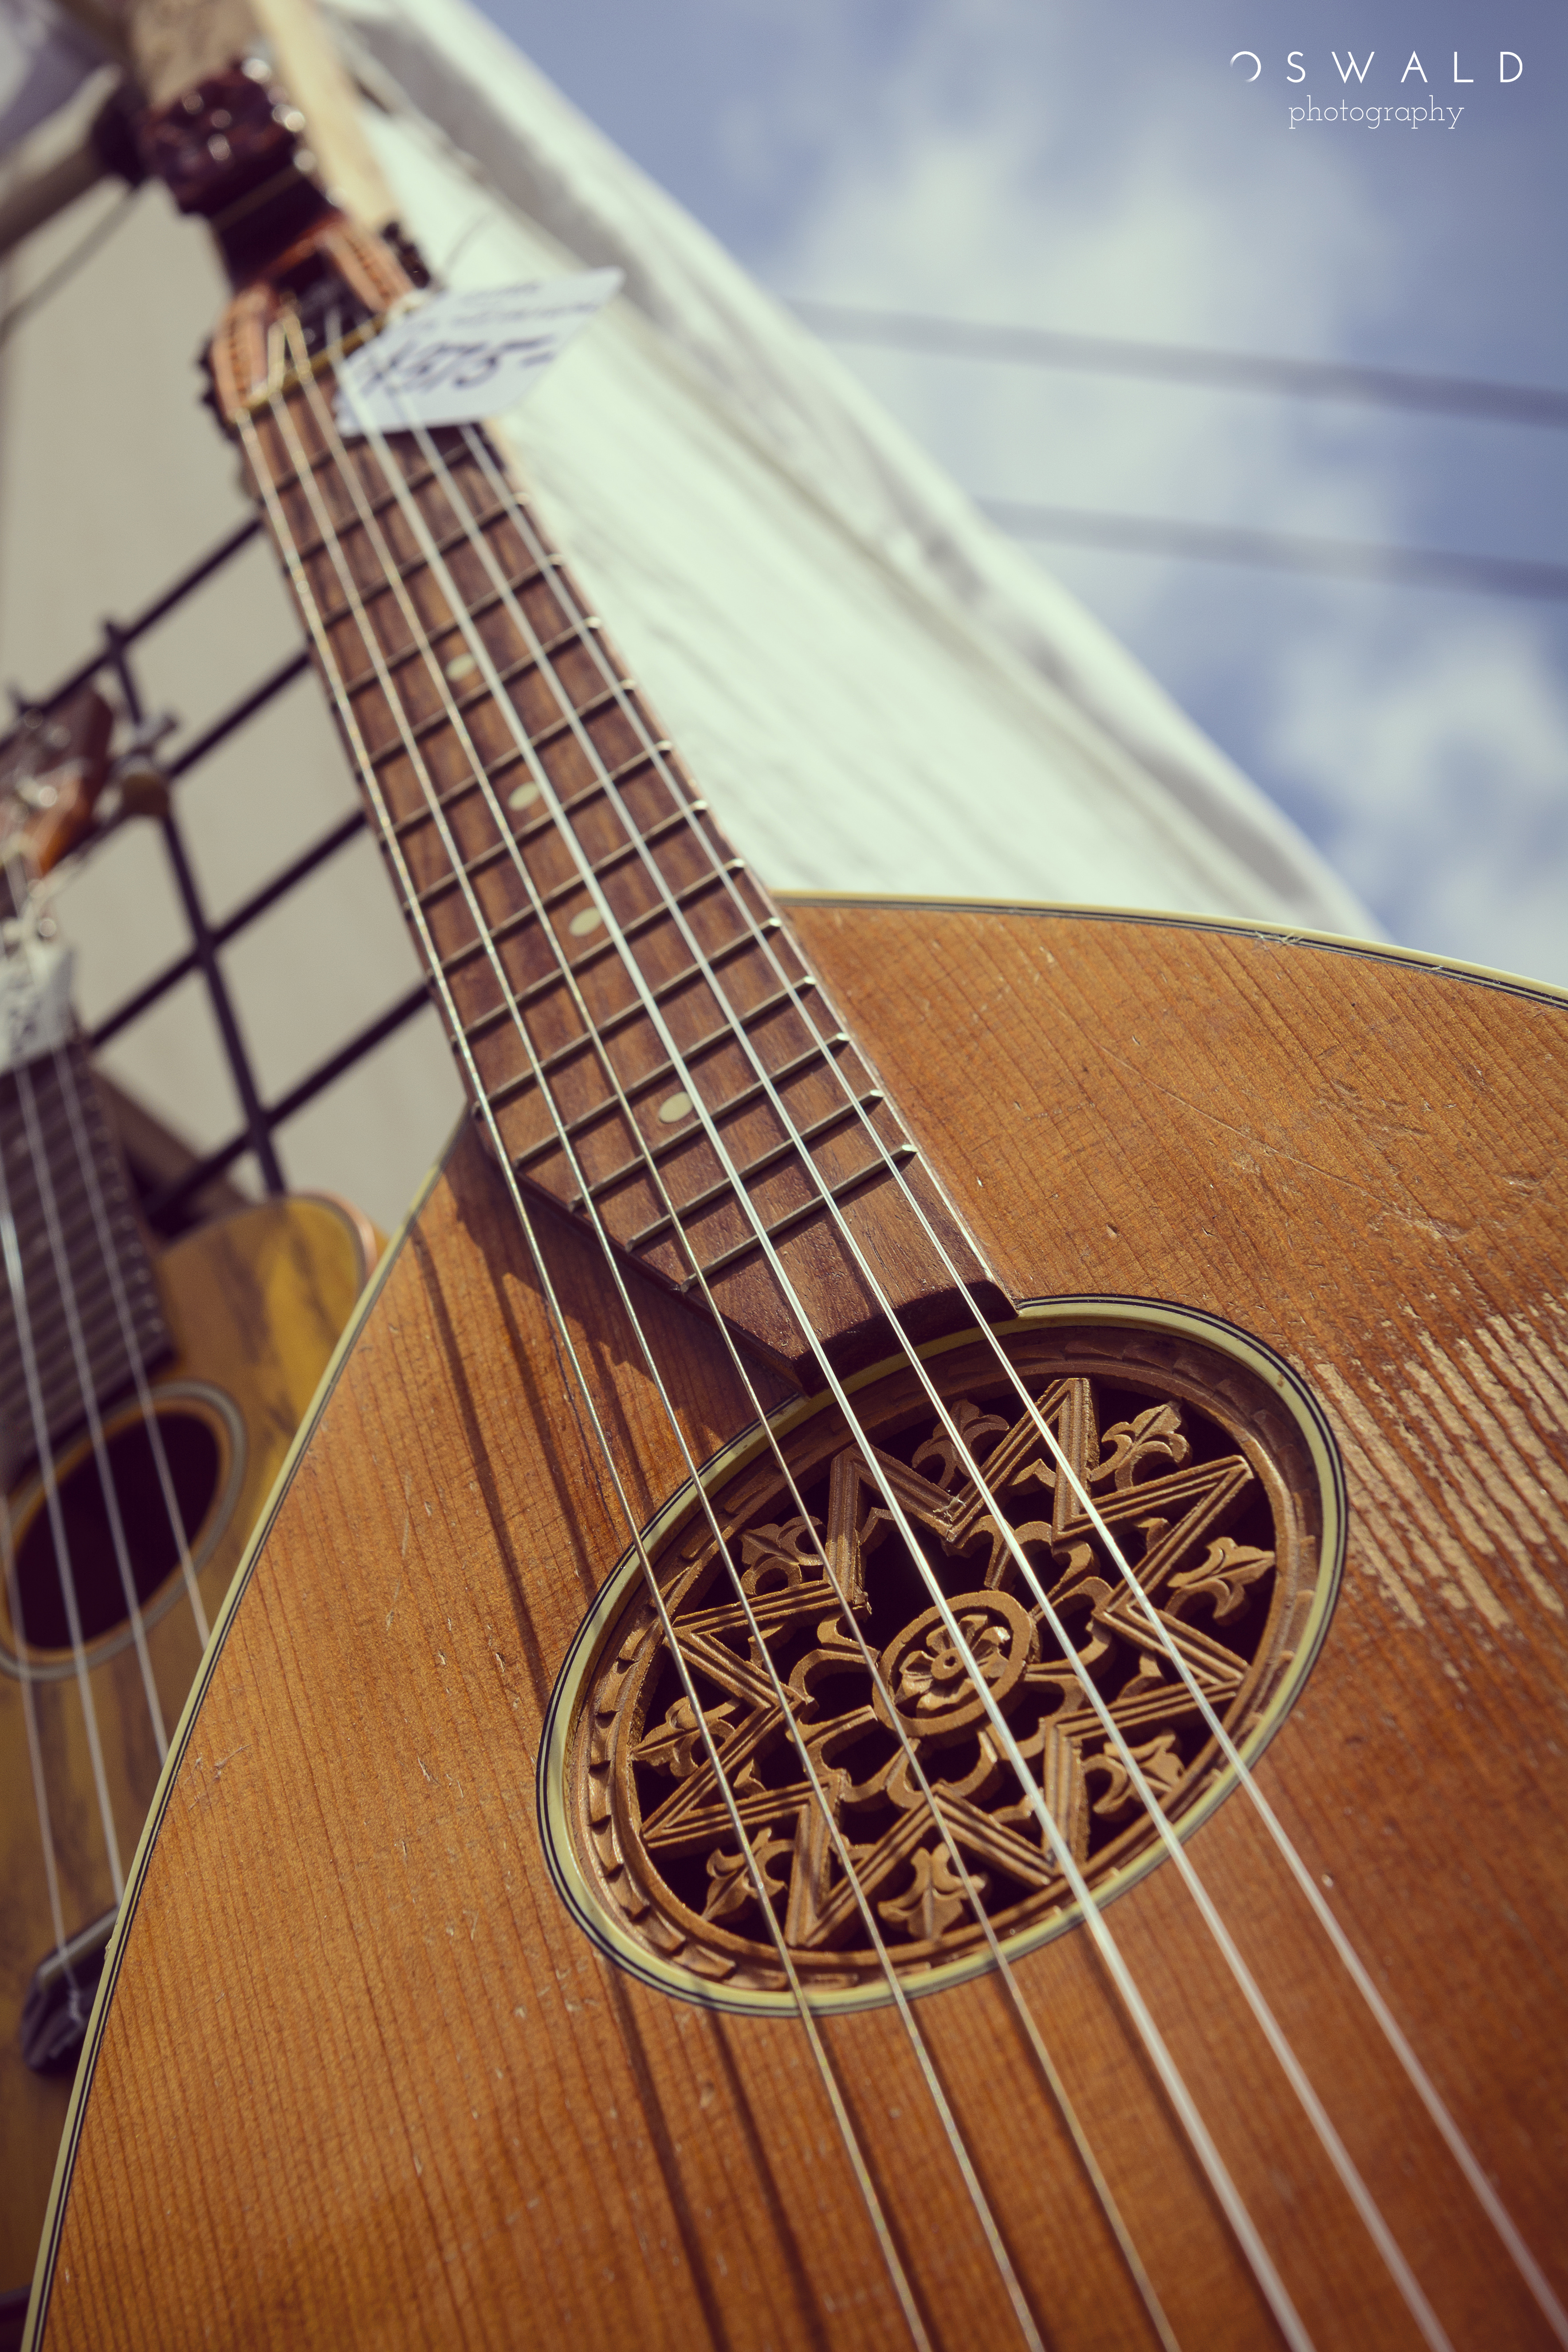 Photo of the fretboard of a classical lute replica, for sale at a market